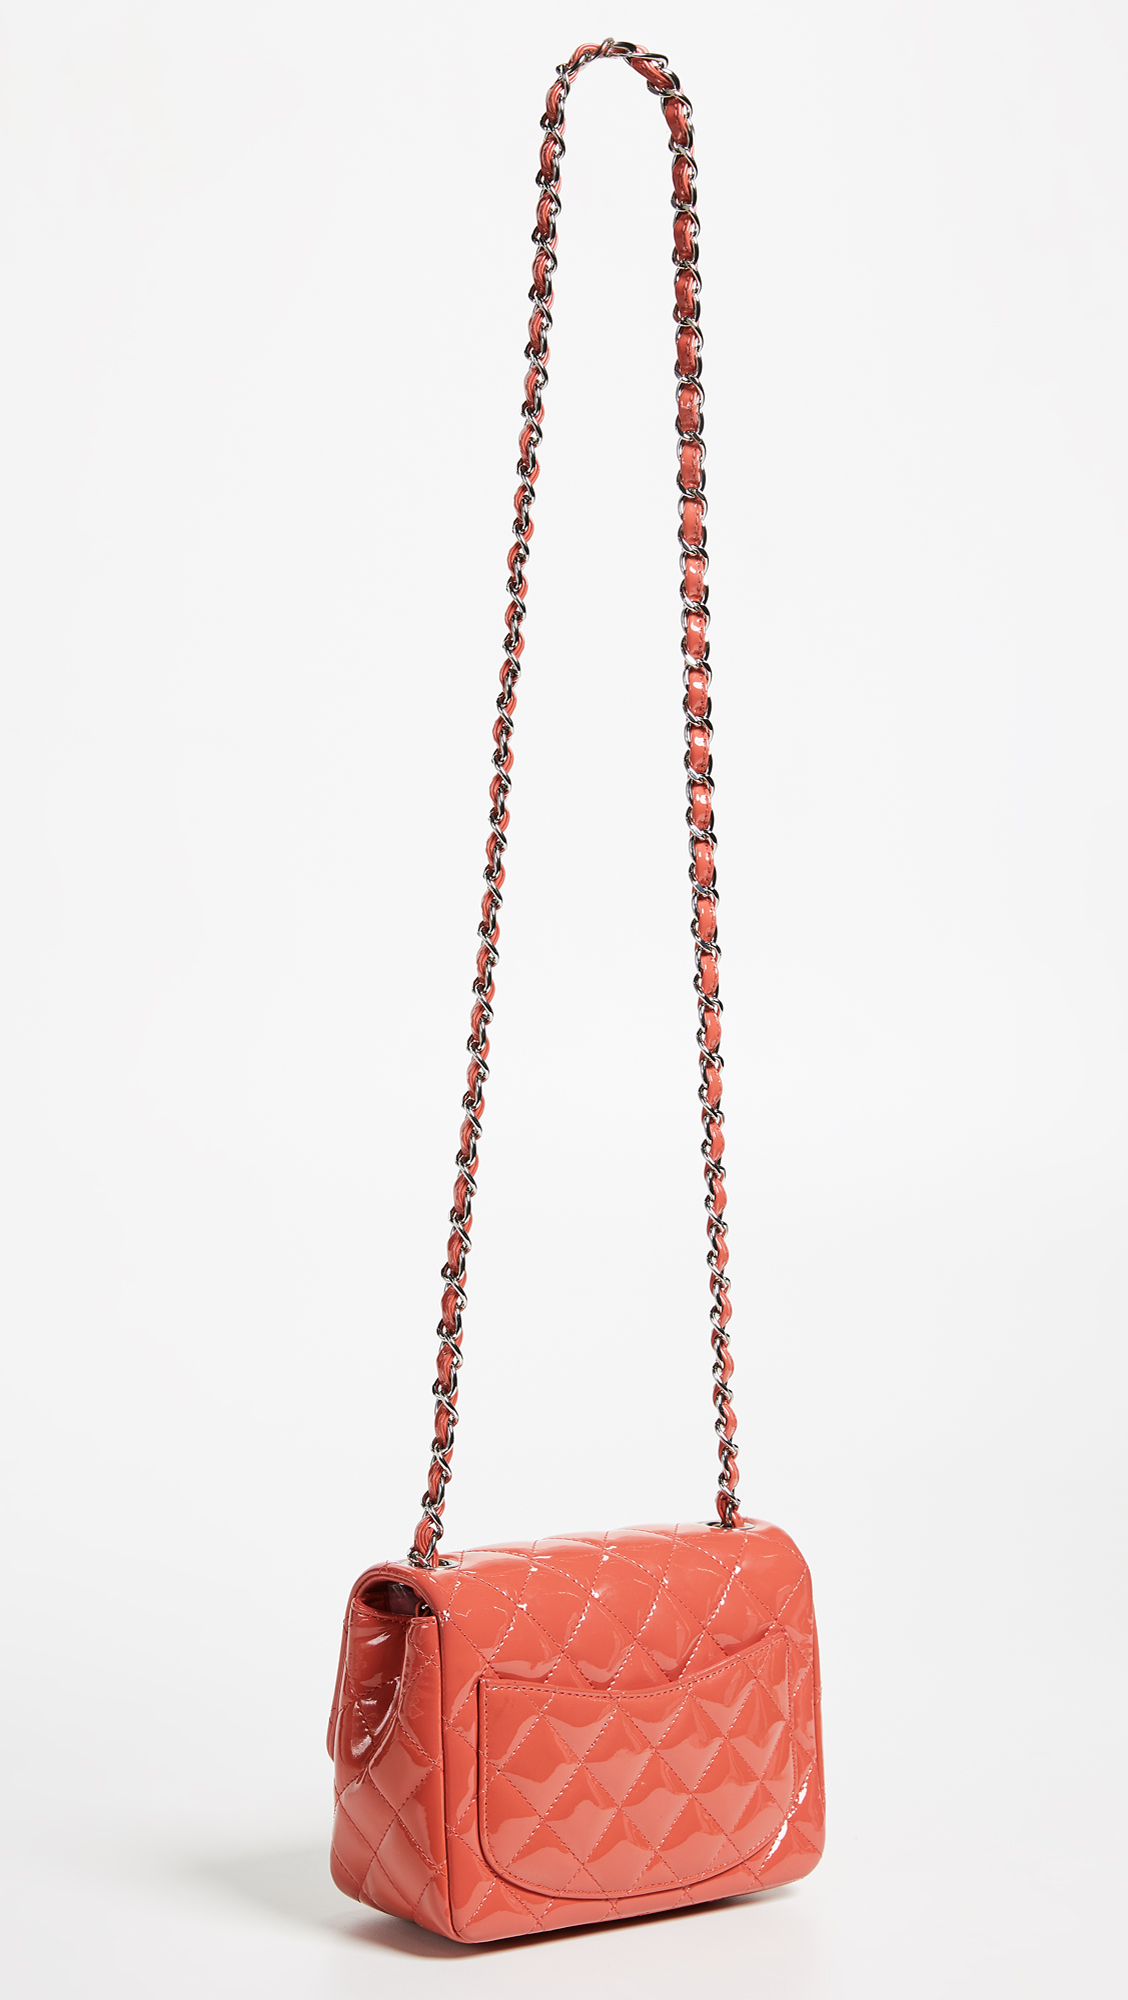 a7aabc795c4f What Goes Around Comes Around Chanel Patent Mini Flap Bag | SHOPBOP